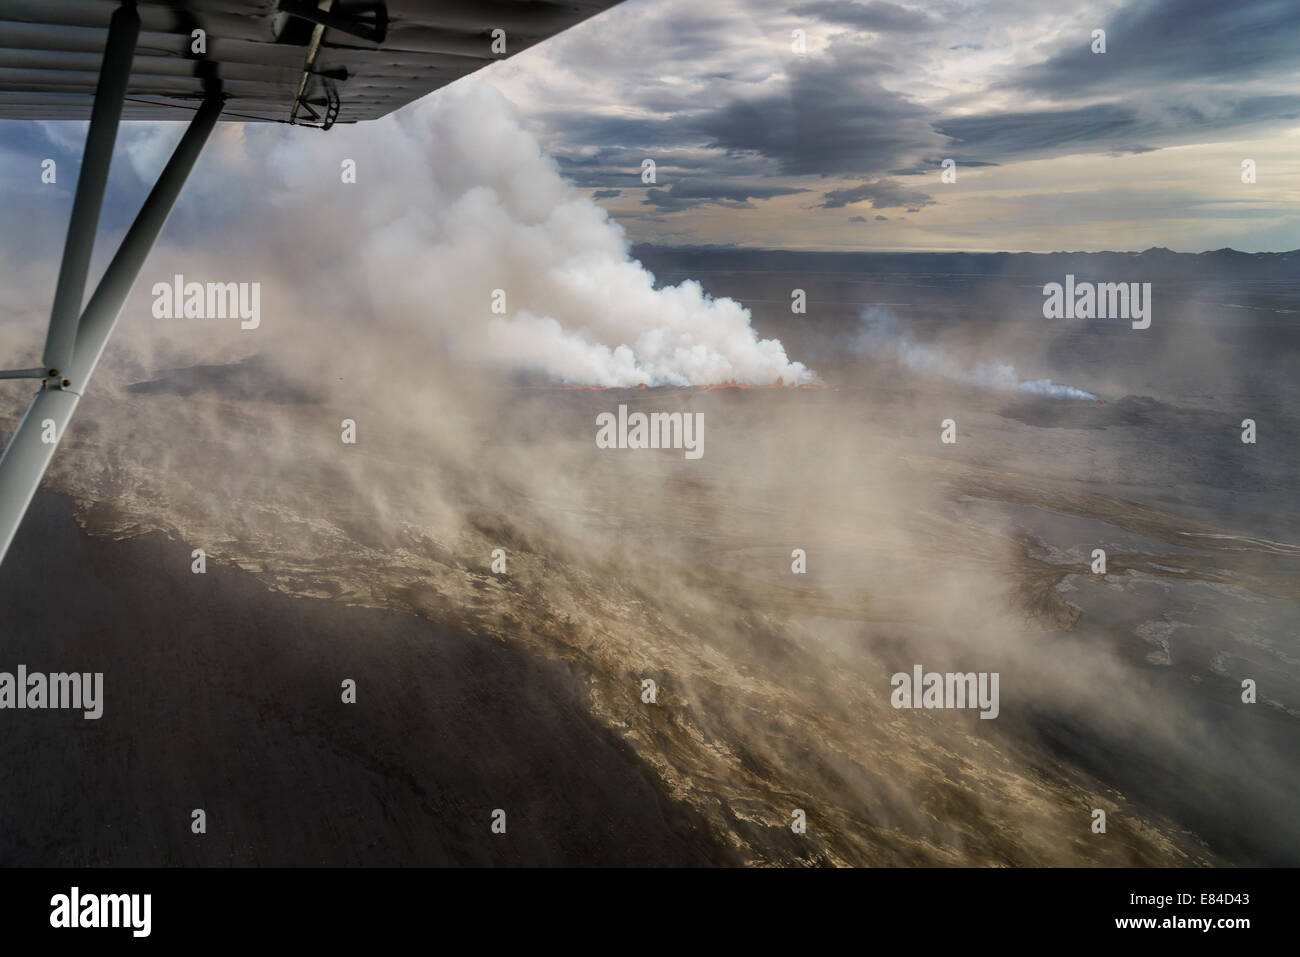 Lava and plumes from the Holuhraun Fissure Eruption by the Bardarbunga Volcano, Iceland. - Stock Image